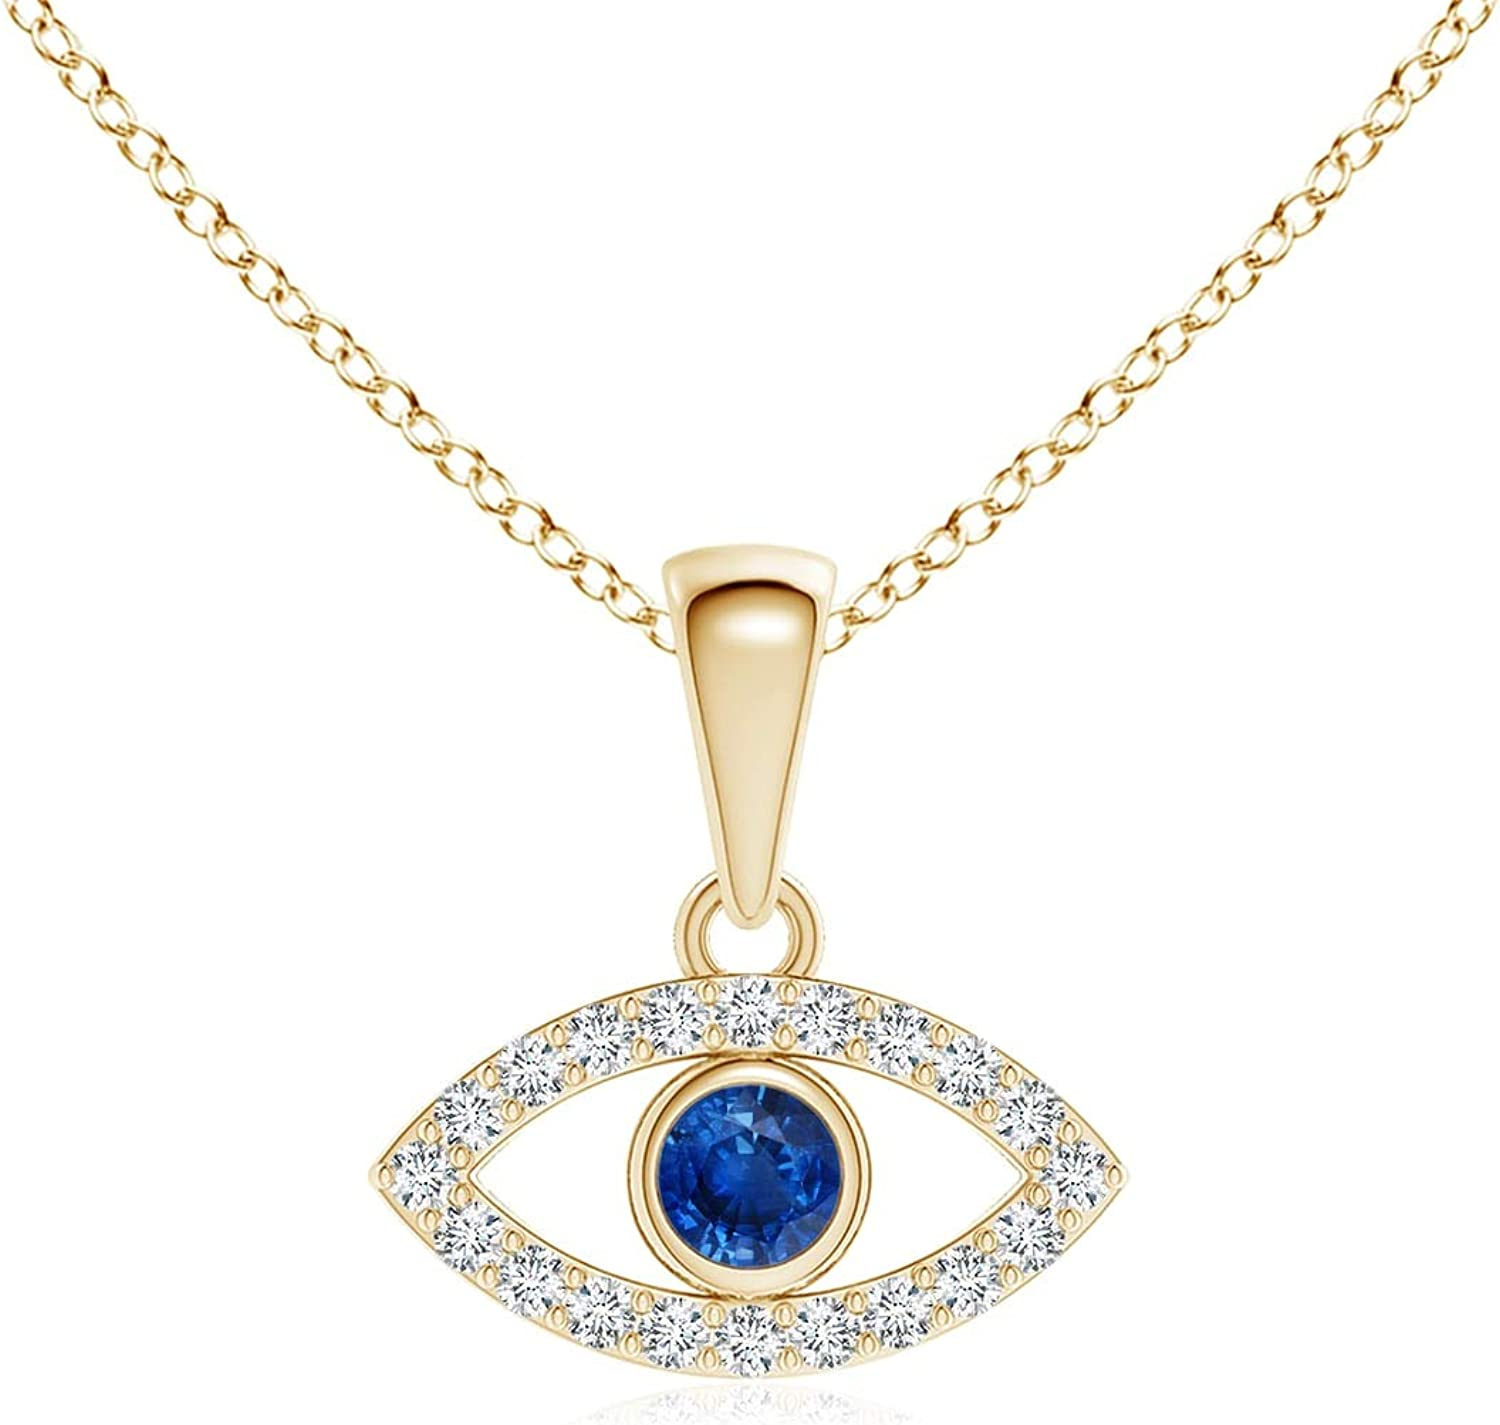 Blue Bargain Sapphire Evil Eye Pendant Diamond with 2.5mm Ranking TOP3 Accents